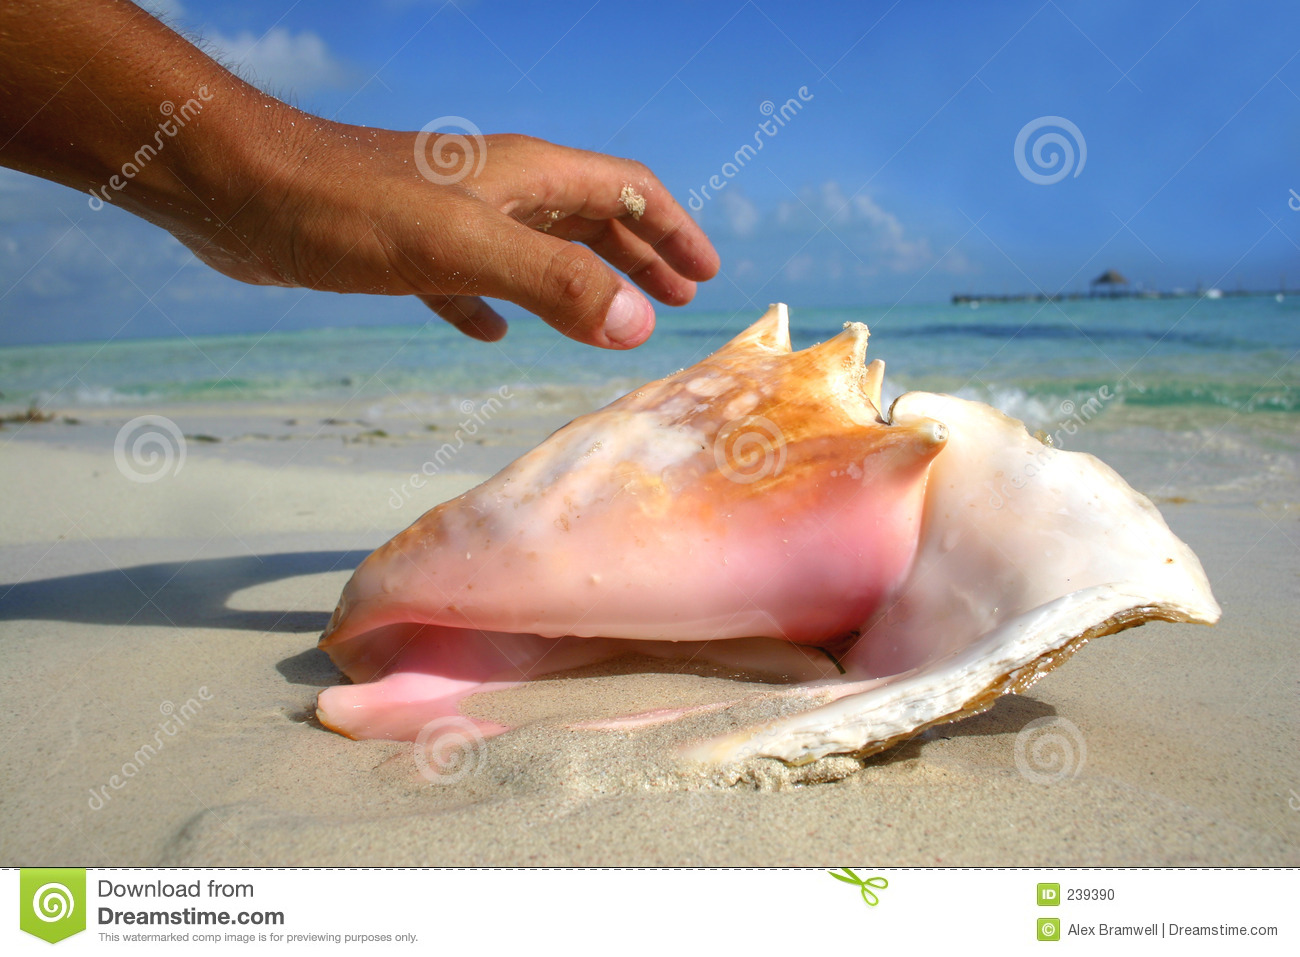 Hand and Conch